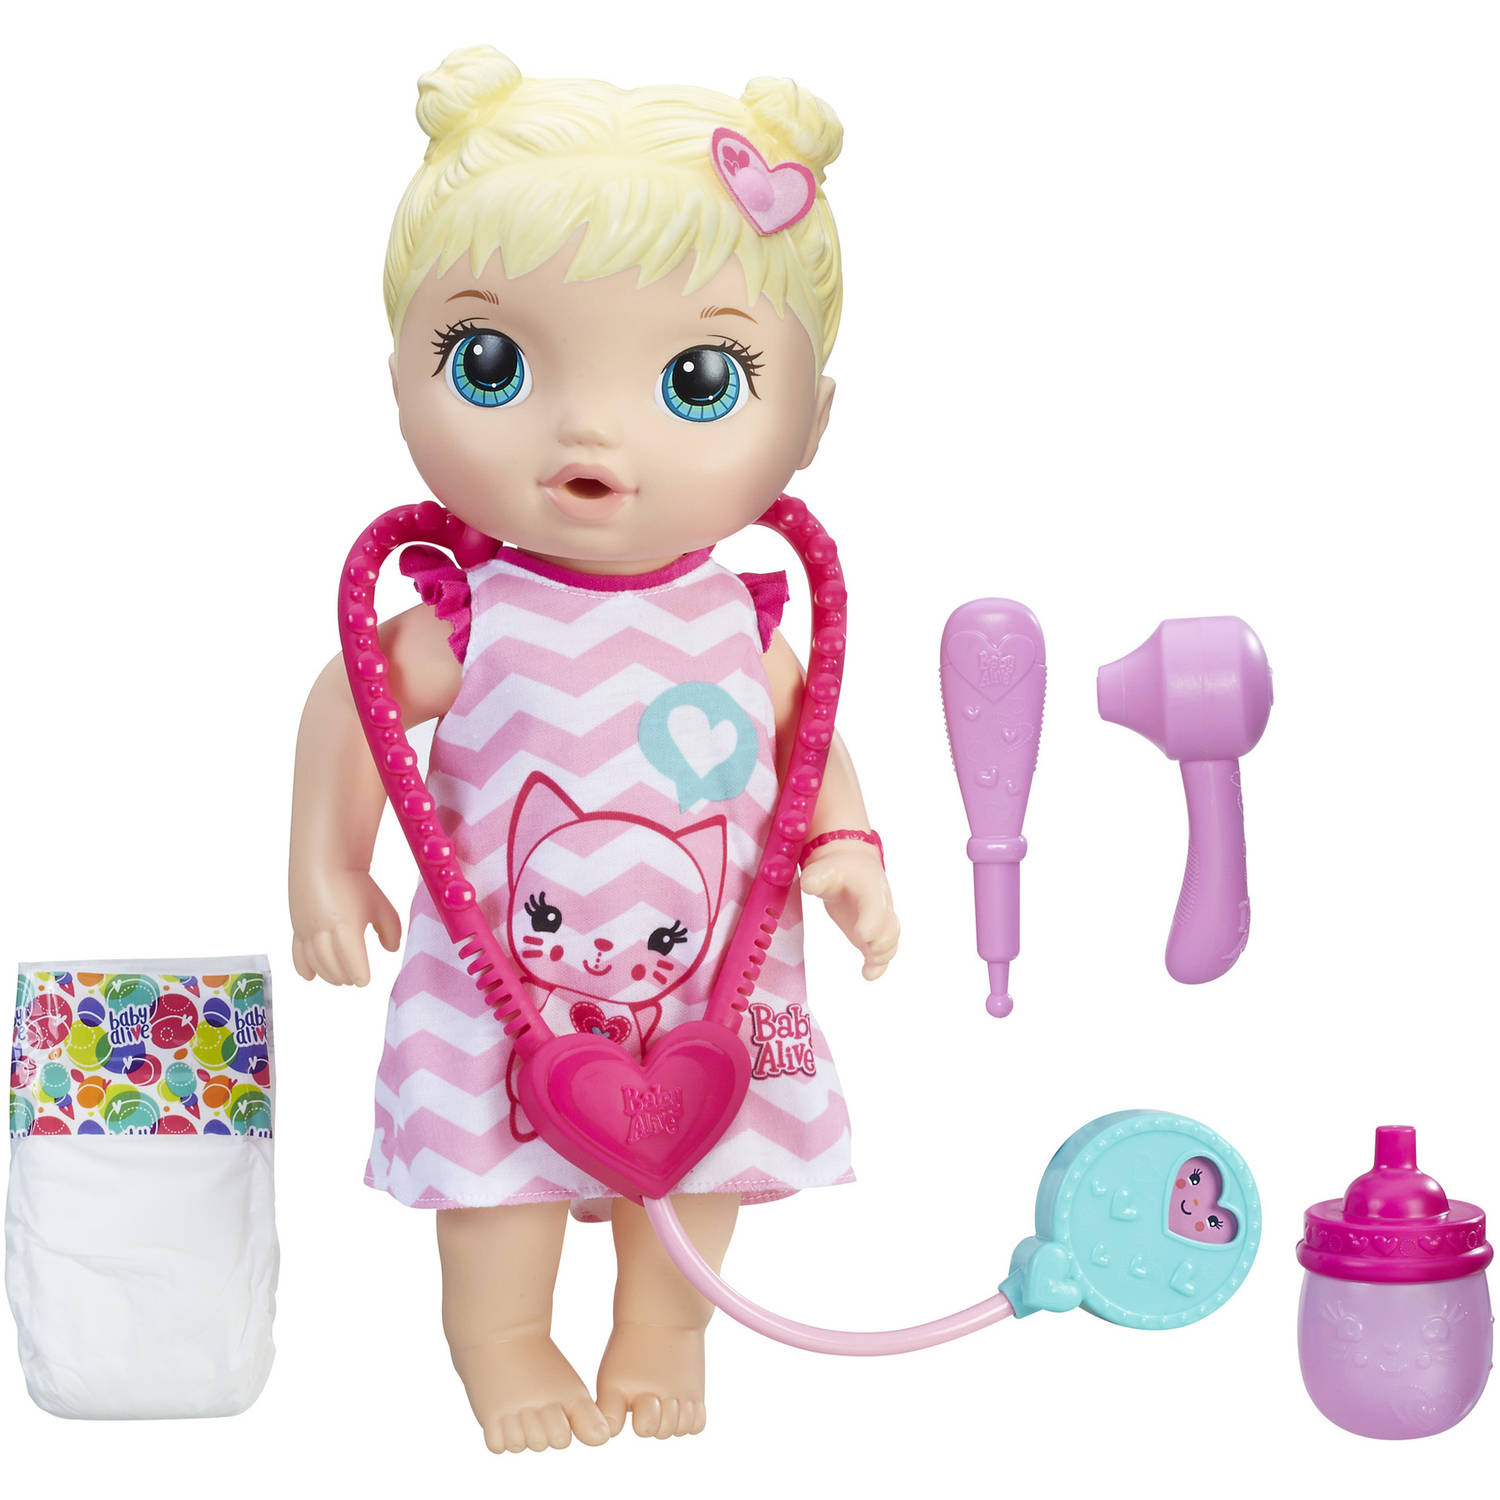 Baby Alive Better Now Bailey, Blonde Hair Doll, Ages 3 and up